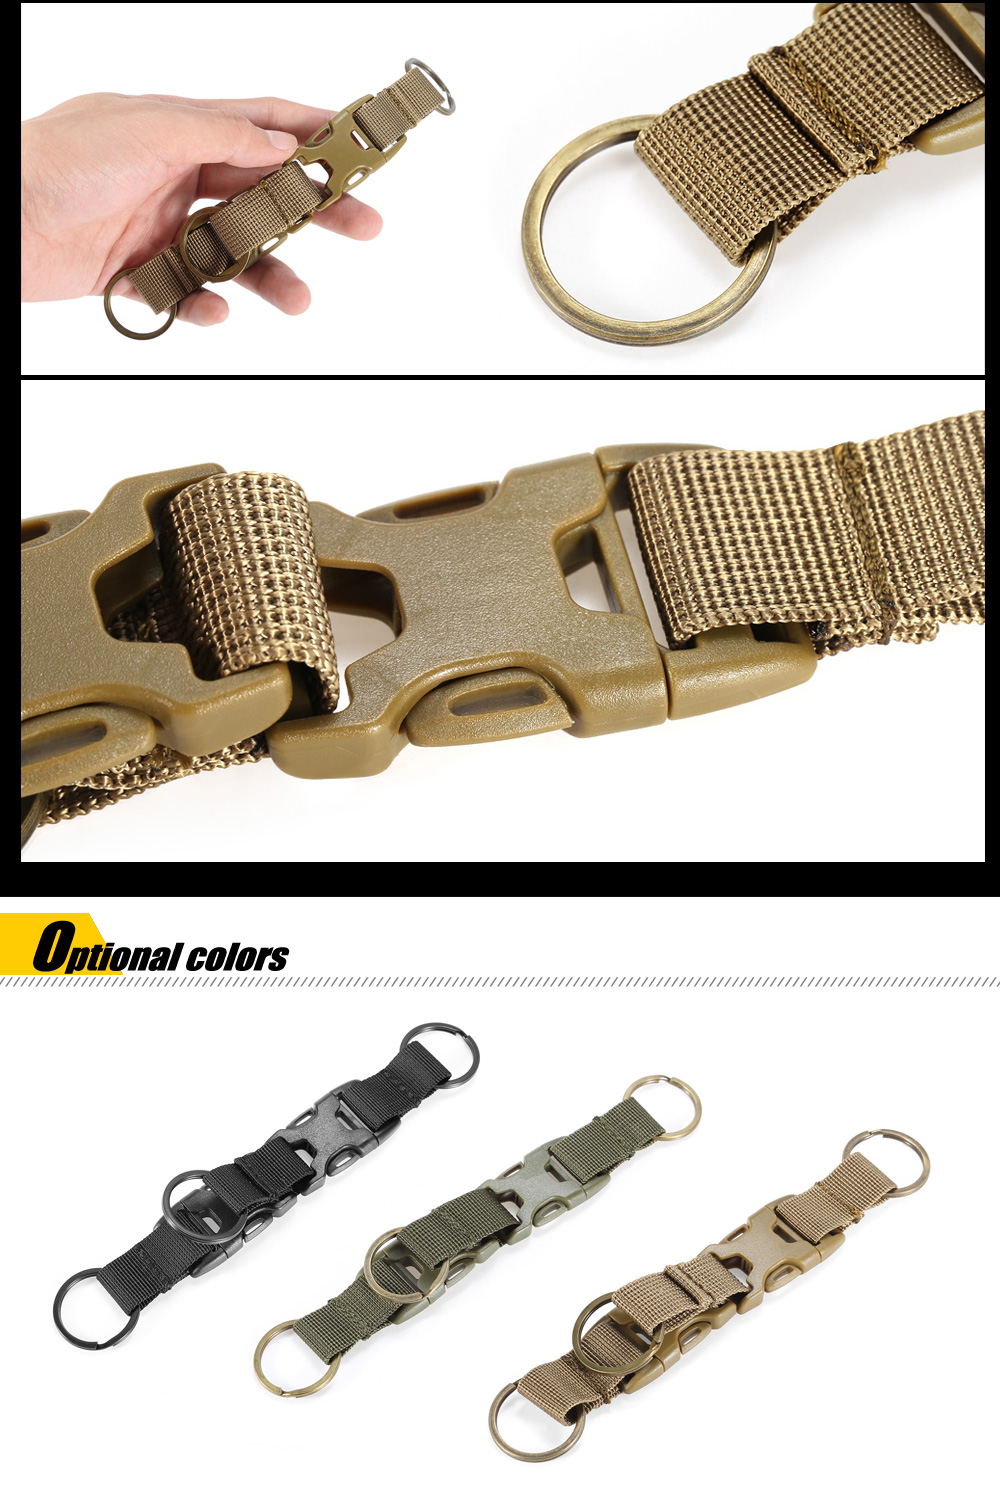 High-density Nylon Tactical Keychain with 3 Key Rings for MOLLE System